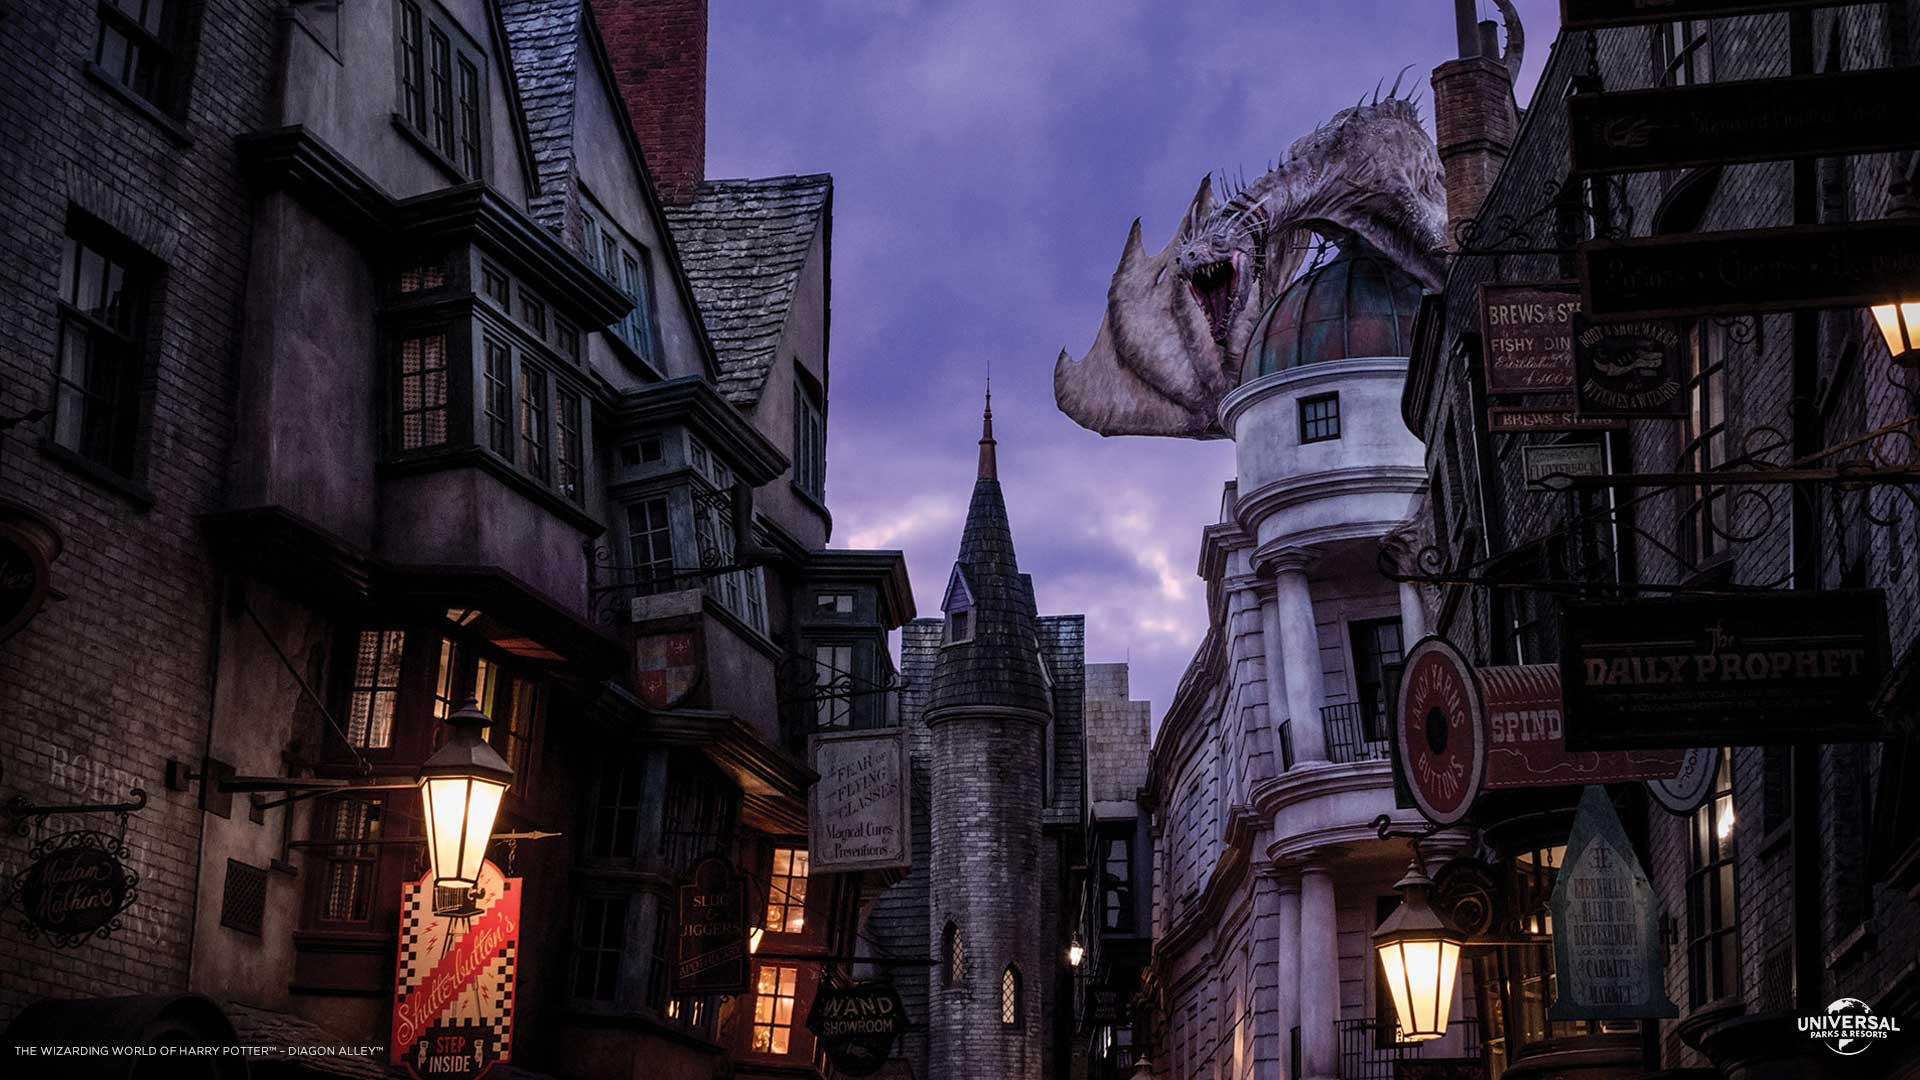 UOR DiagonAlley VB